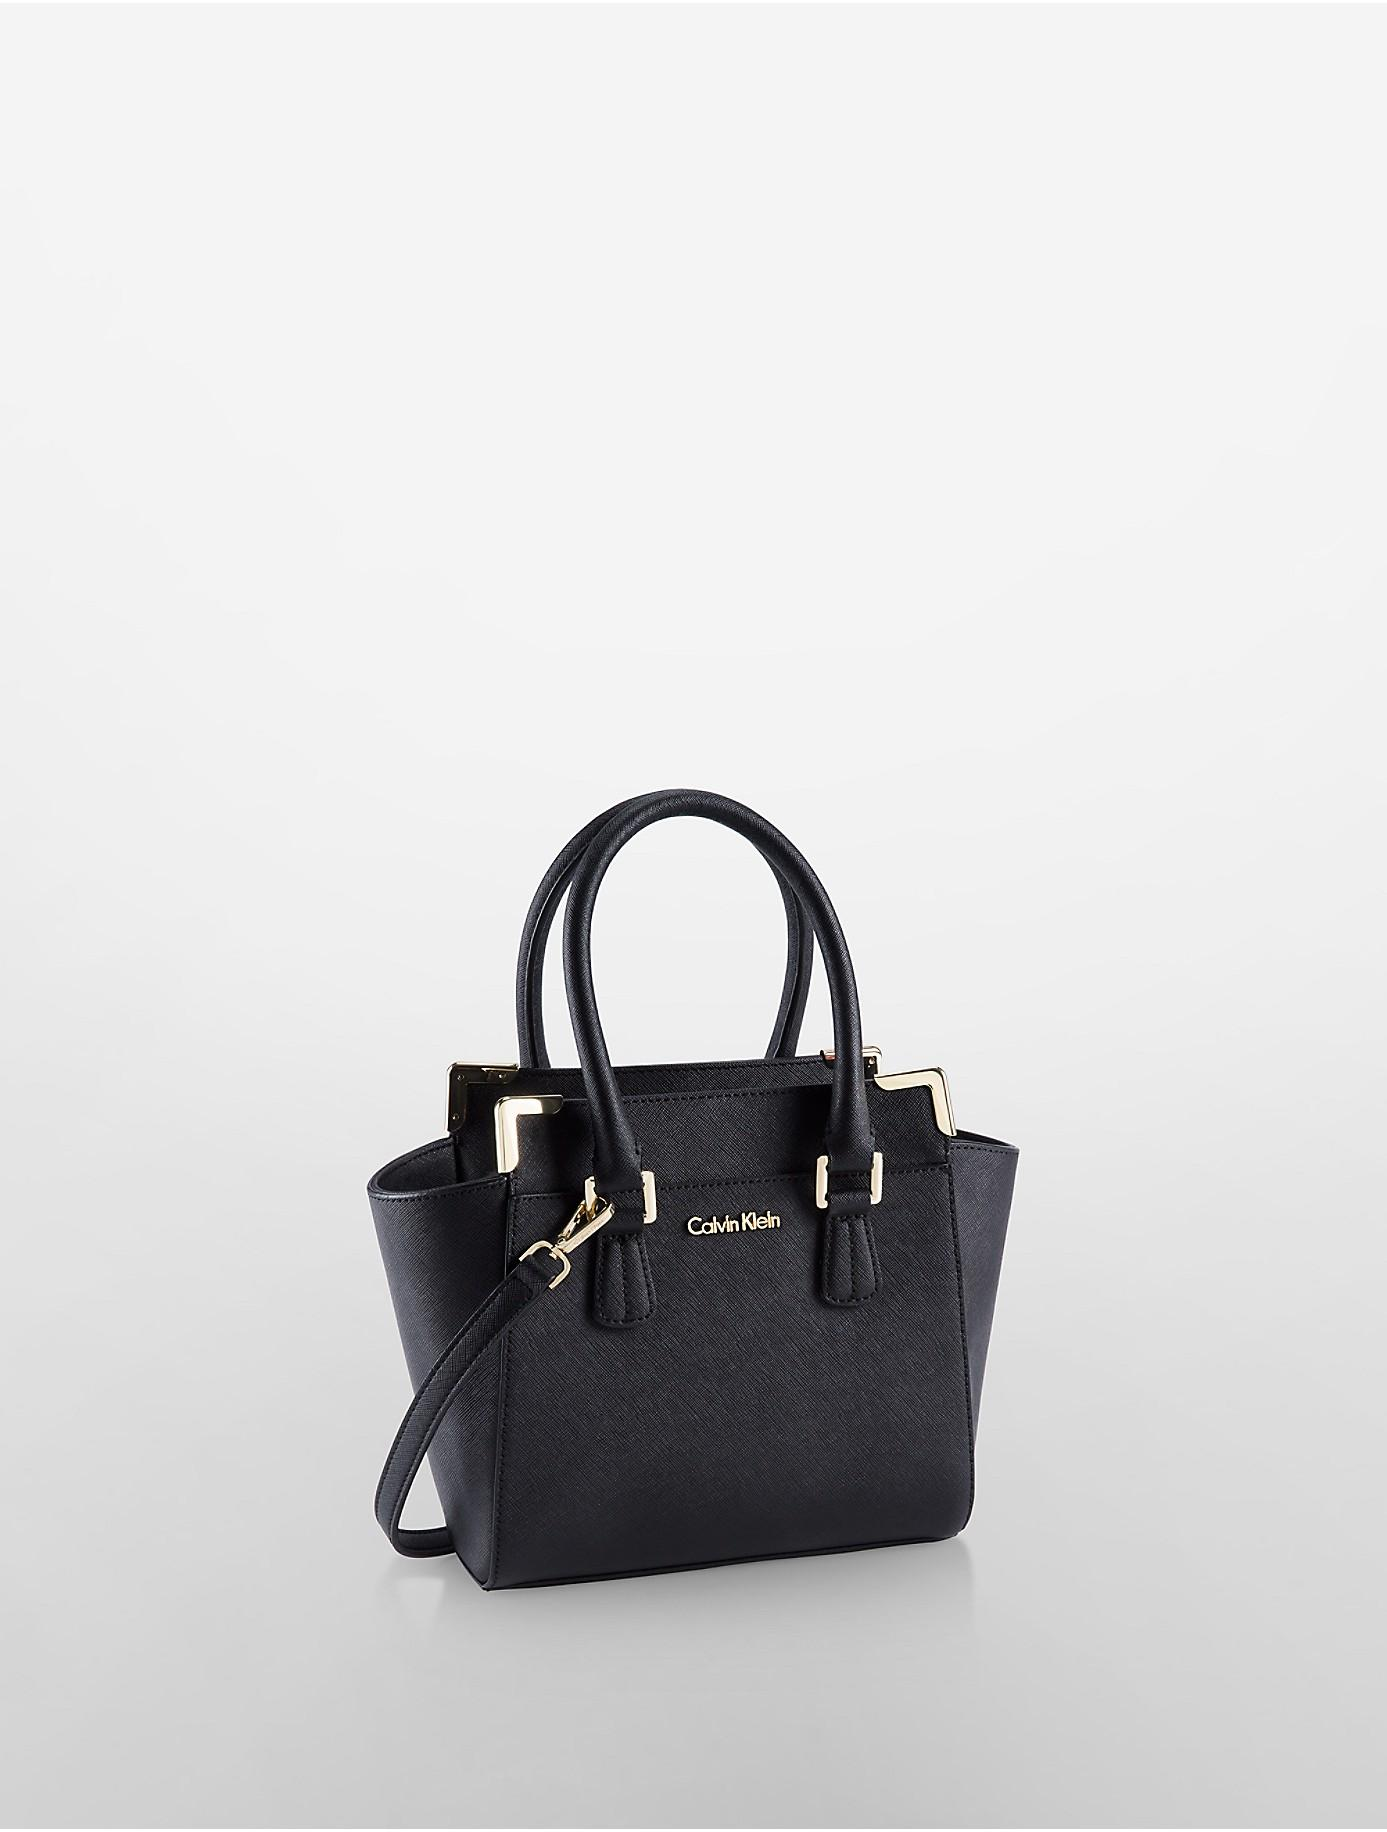 Discount Visit New Leather Mini Tote Bag Calvin Klein Free Shipping Discount Cheap Sale Store EAsd9HmpBf